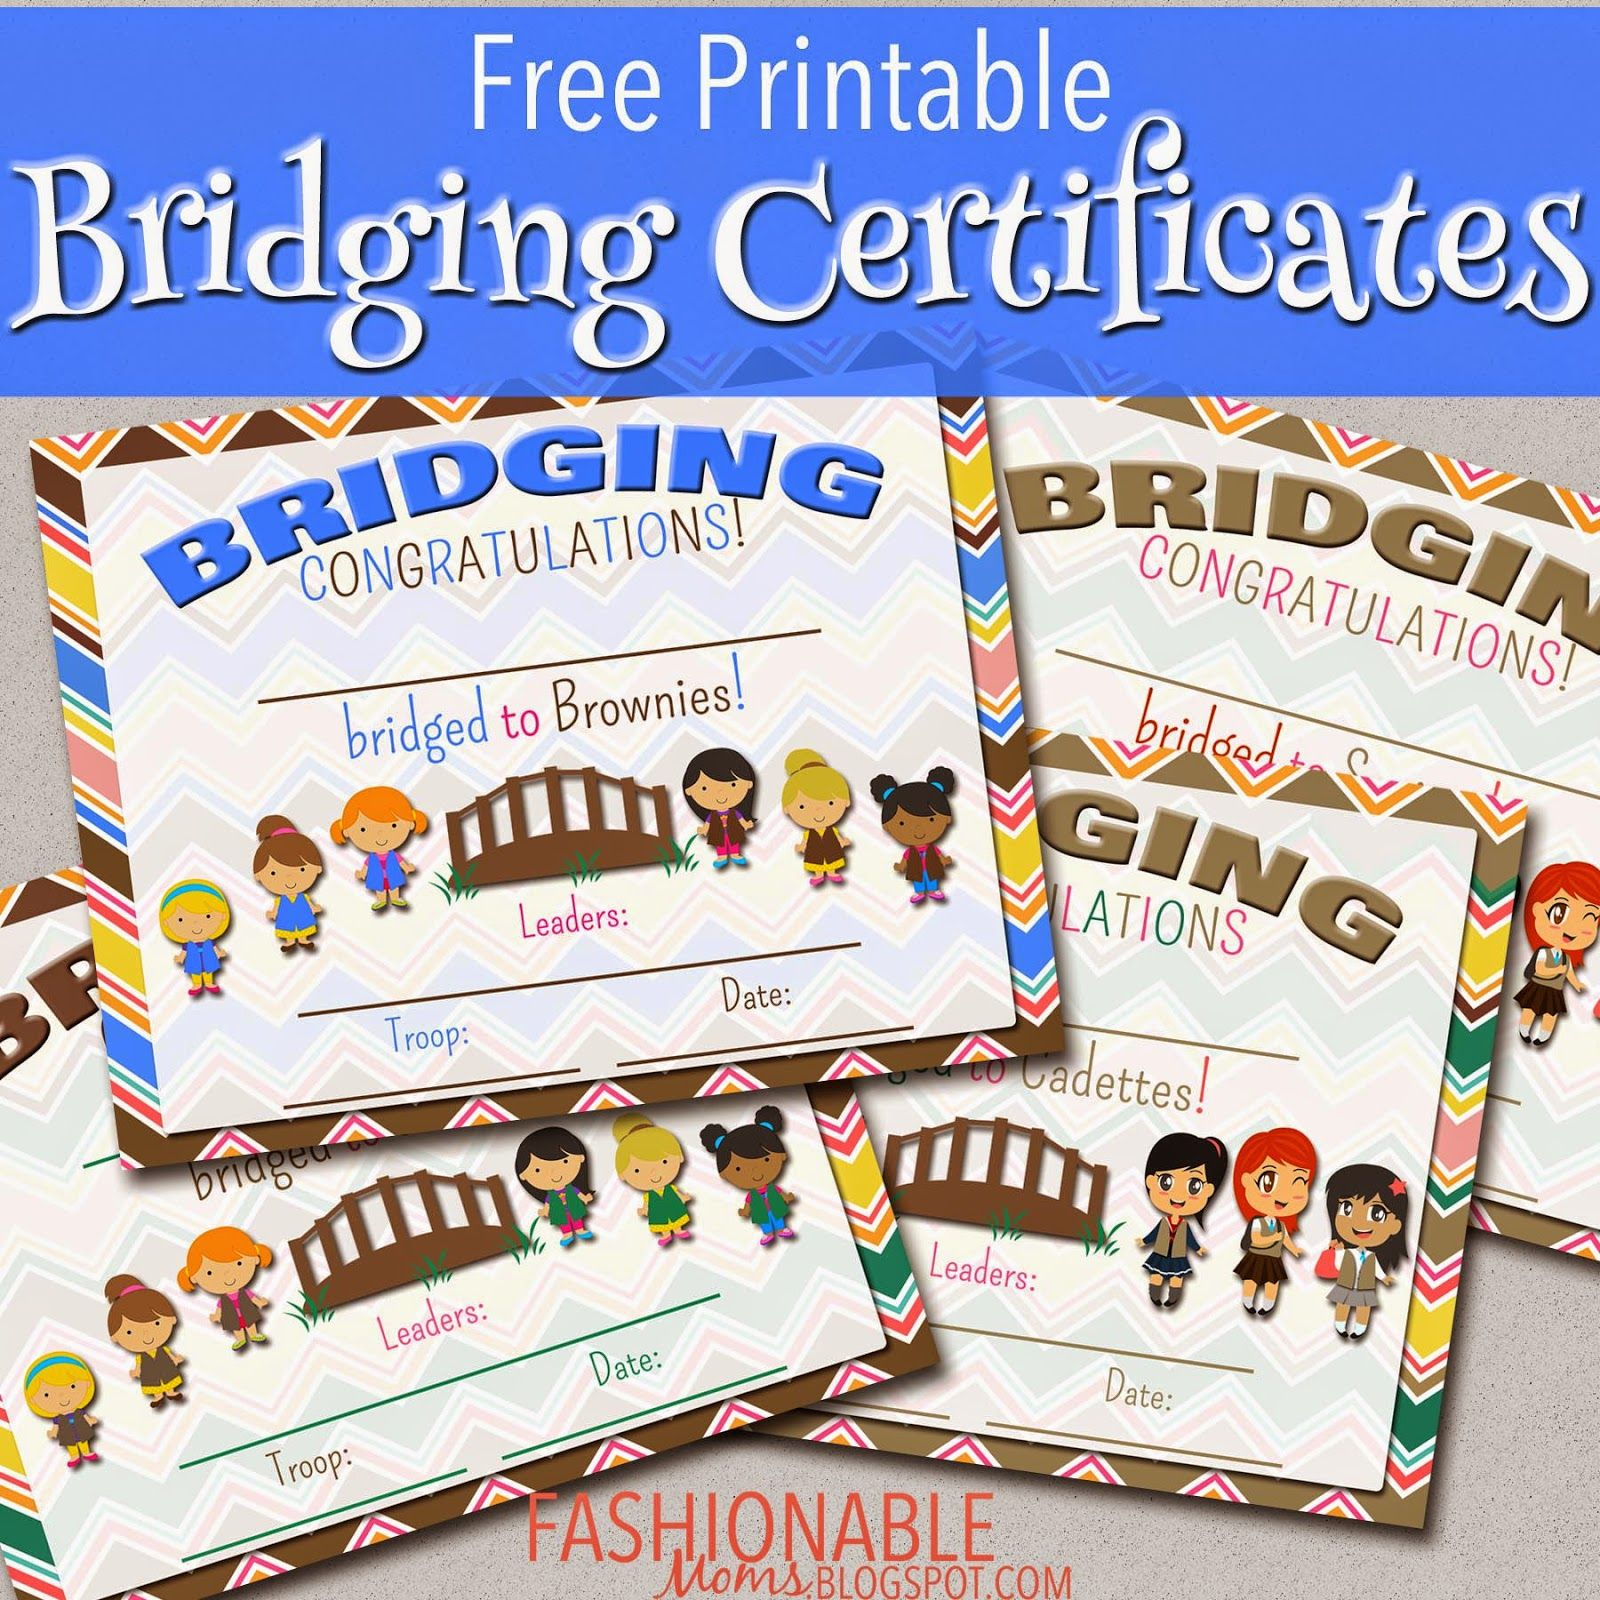 Fashionable moms free printable bridging certificates girl scouts fashionable moms free printable bridging certificates alramifo Image collections